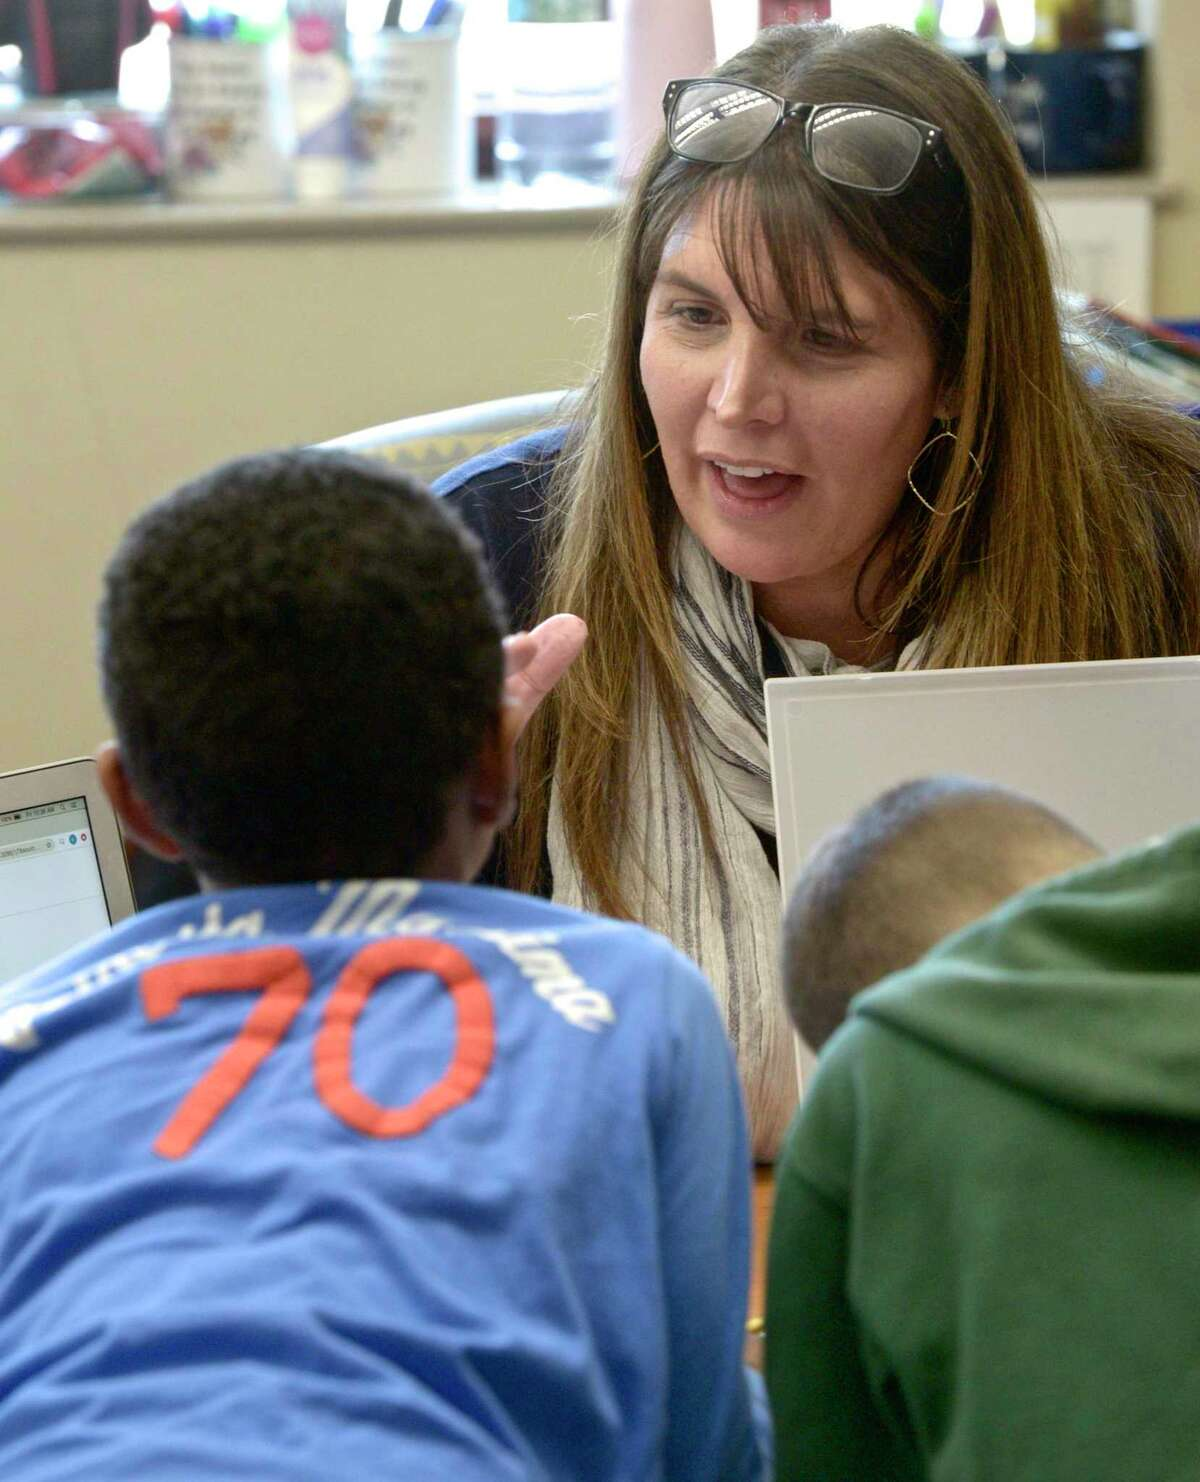 Second Grade teacher Kathy Hamilton works with students at Ellsworth Avenue Elementary school using ELL strategies in the classroom. Friday, February 28, 2020, in Danbury, Conn.